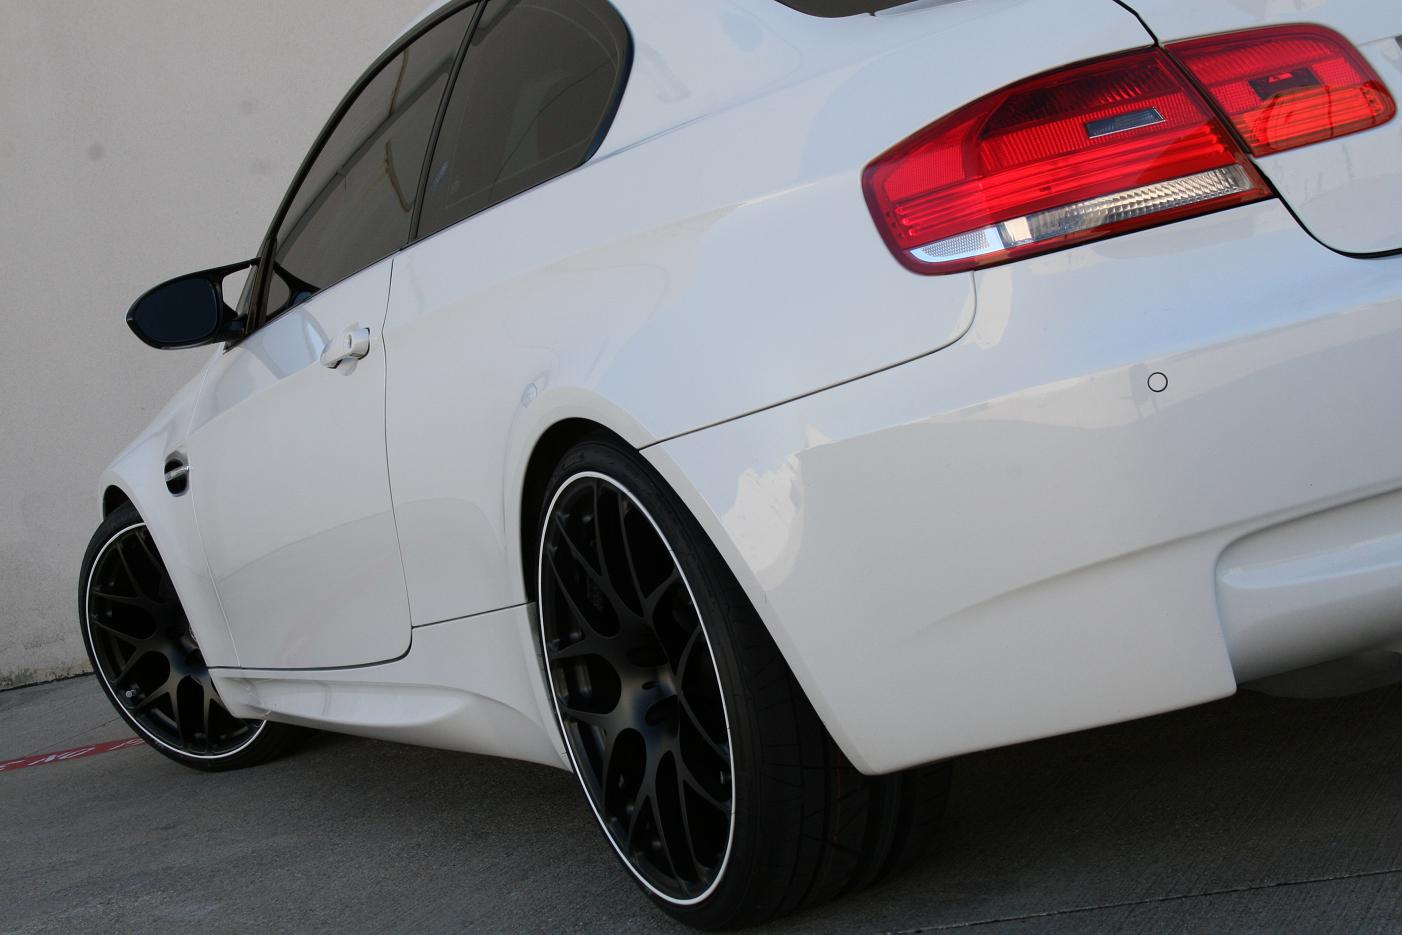 20 Quot Hre P40 Matte Black With Aw Pinstripe On Aw E92 M3 Bmw M5 Forum And M6 Forums